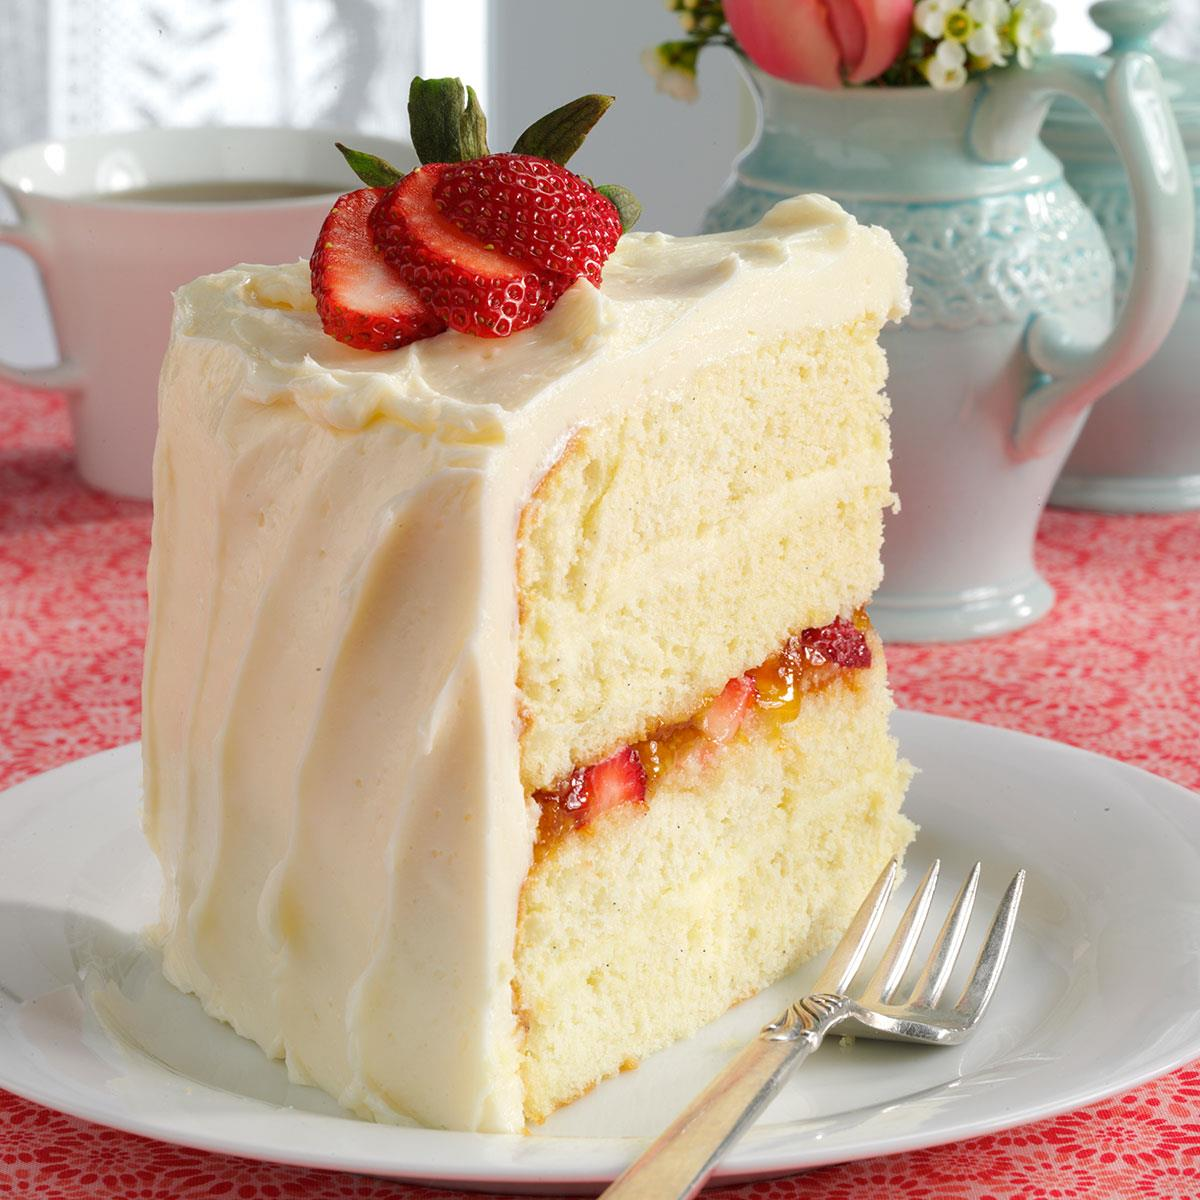 Whipped white chocolate ganache how to cook that